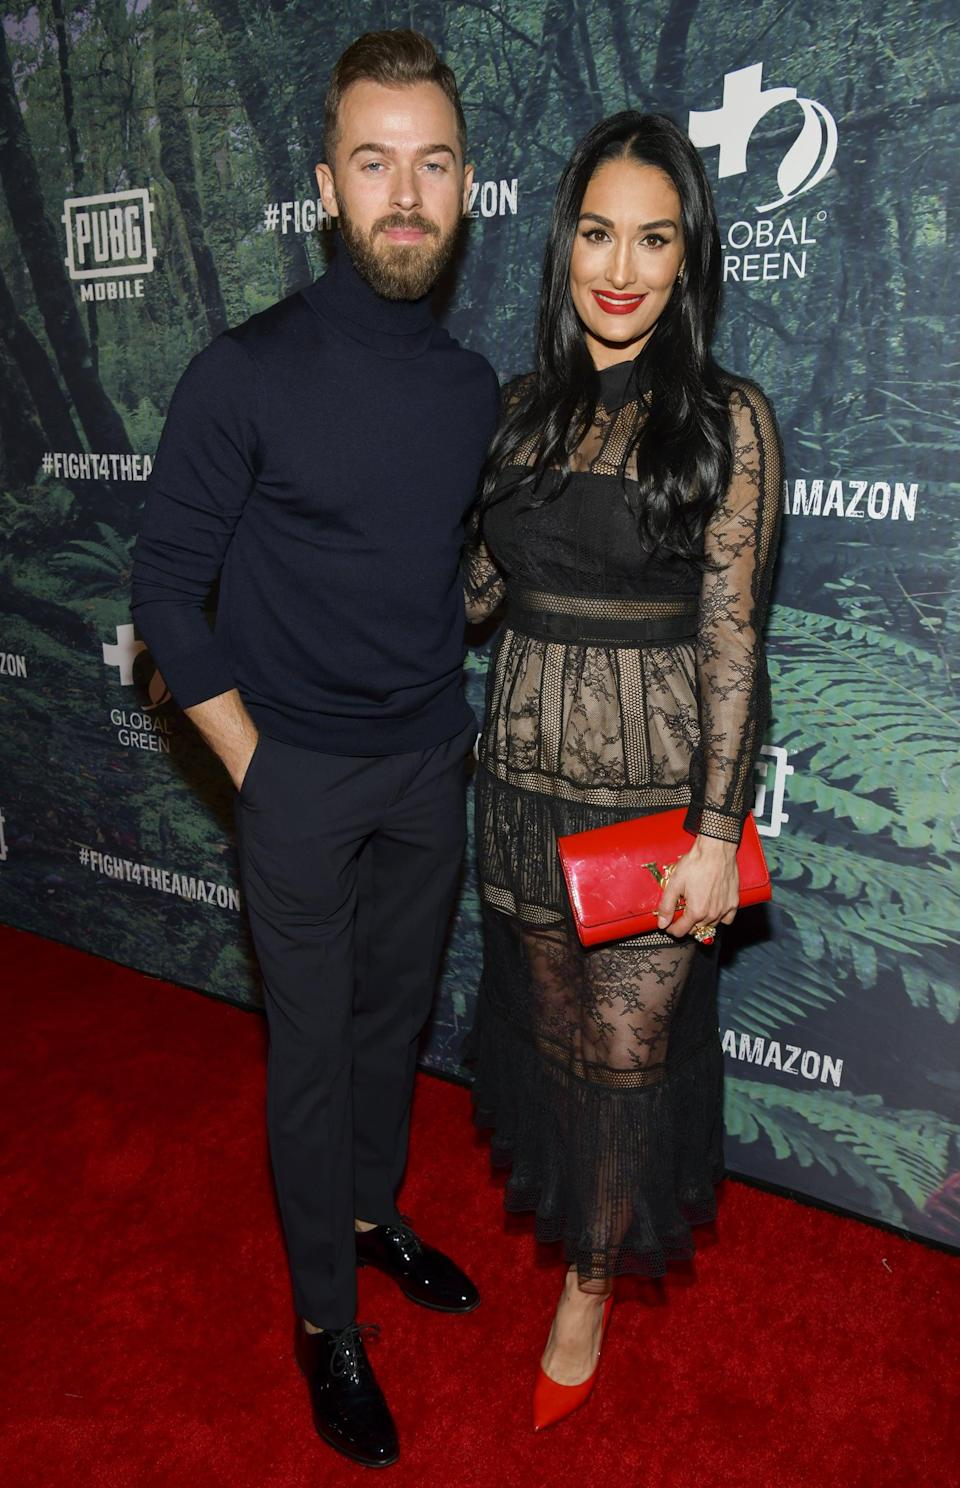 "<p>In January, the former wrestler announced that she's expecting her first child <a href=""https://www.popsugar.com/celebrity/Nikki-Bella-Artem-Chigvintsev-Dating-45955263"" class=""link rapid-noclick-resp"" rel=""nofollow noopener"" target=""_blank"" data-ylk=""slk:with fiancé Artem Chigvintsev"">with fiancé Artem Chigvintsev</a>. Her due date is only a week and a half apart from her twin sister, Brie. </p>"